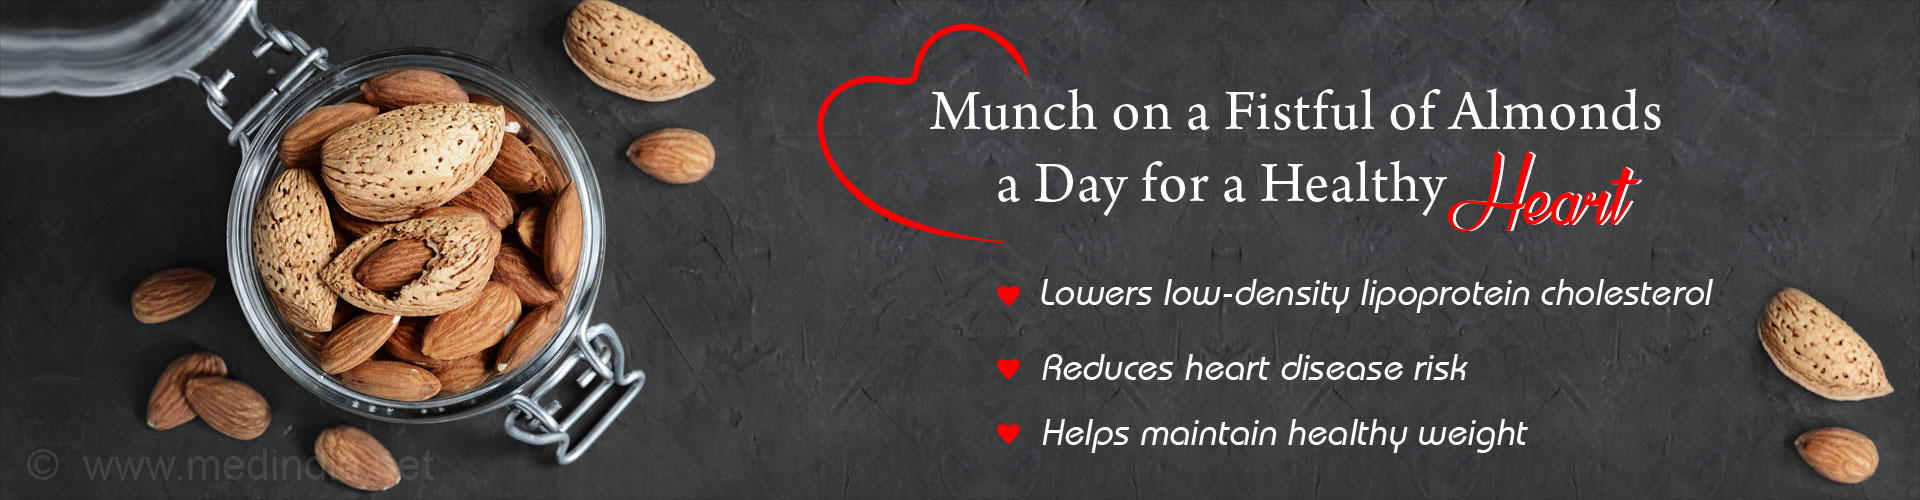 Munch on a Fistful of Alomnds a Day for a Healthy Heart